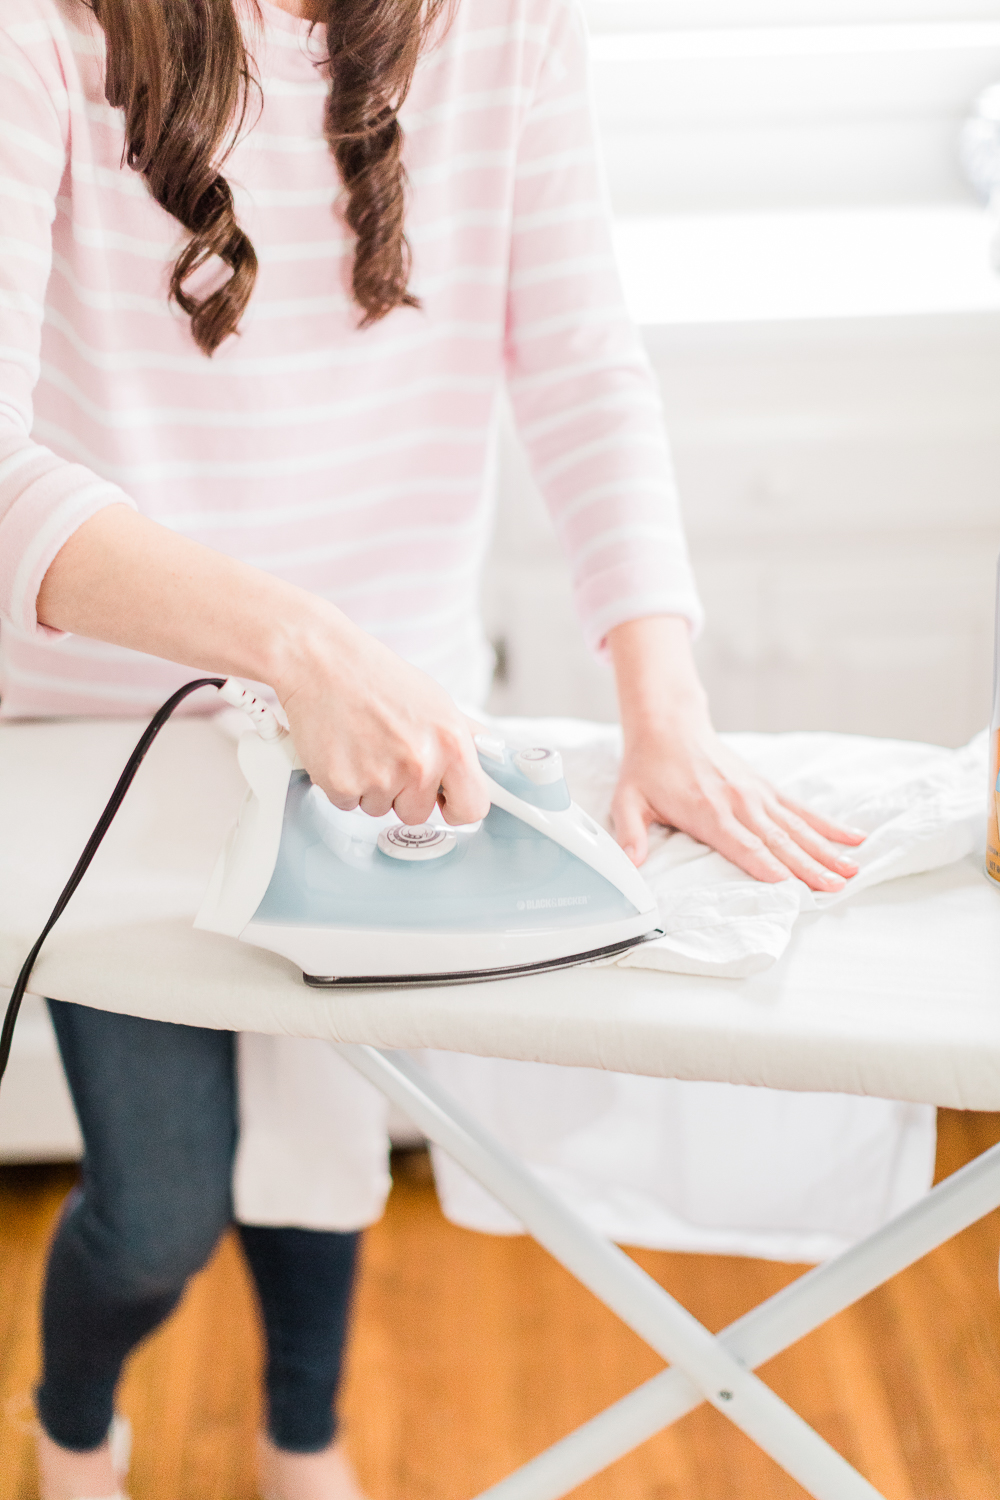 how to use starch spray, how to use spray starch ironing, how to iron with starch spray, how does spray starch work, Niagara Faultless Premium Starch spray uses, How to Use Starch Spray + 5 Must-Know Budget-Friendly Clothing Hacks by affordable fashion blogger Stephanie Ziajka from Diary of a Debutante